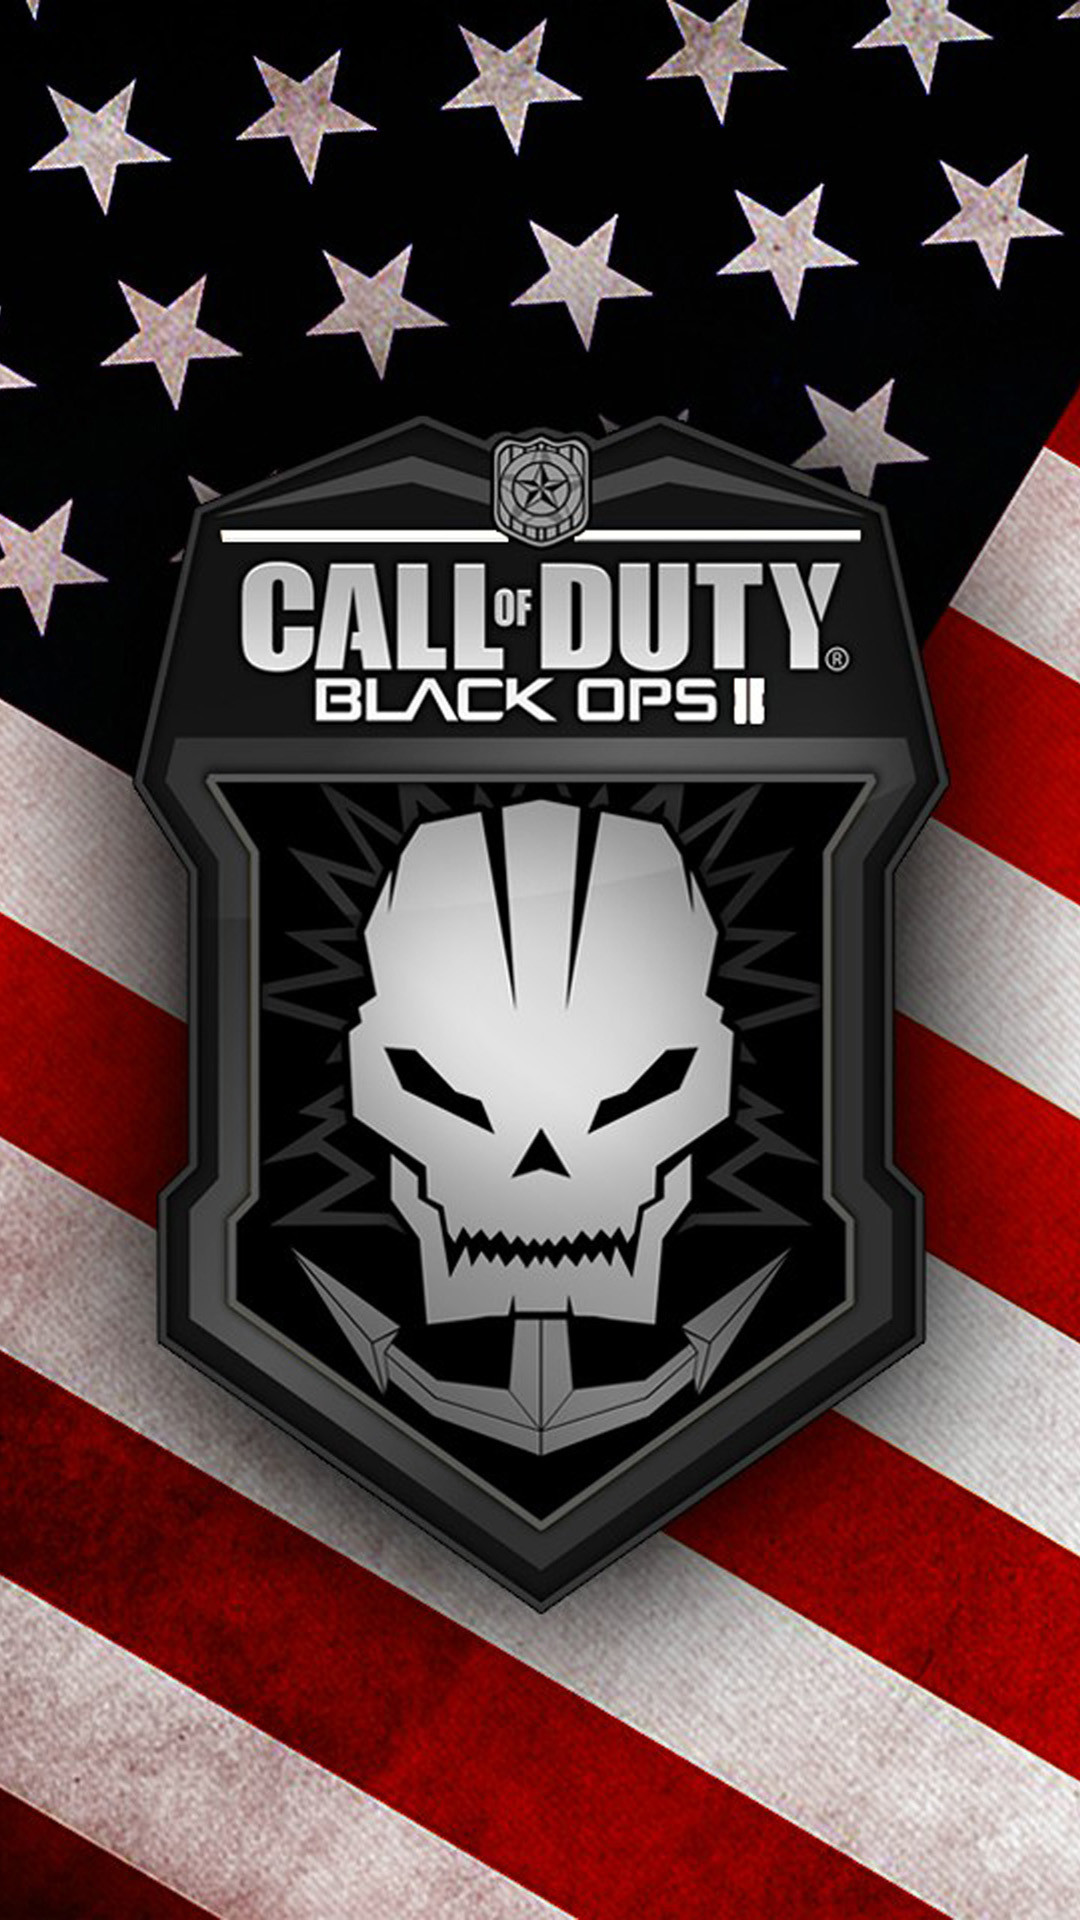 [game] Call Of Duty - Iphone Call Of Duty Black Ops 4 - HD Wallpaper